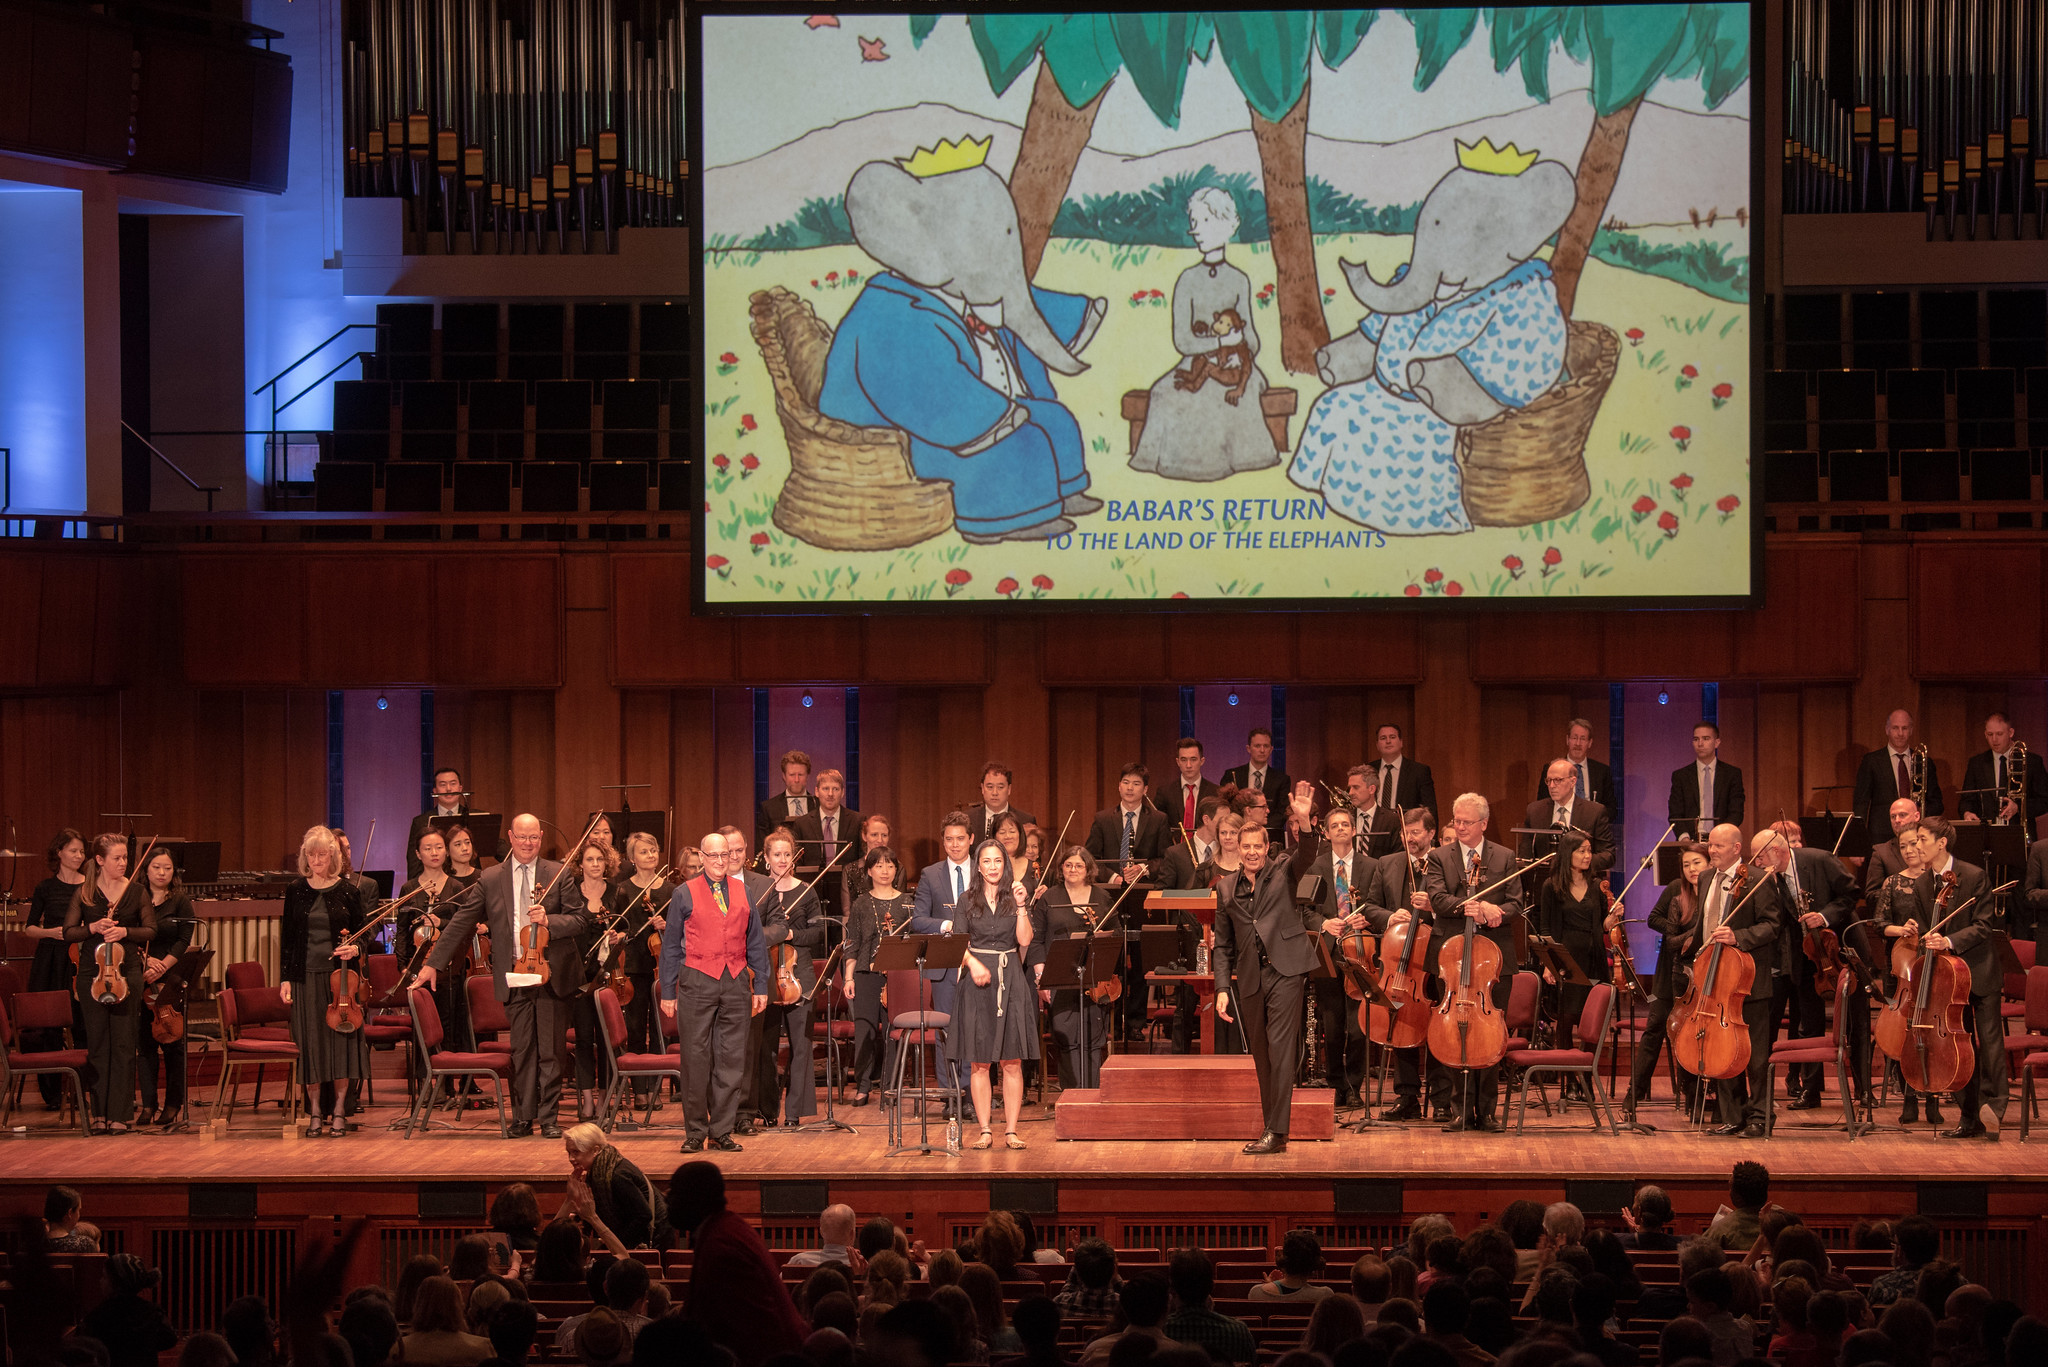 (l-r in front): Composer Raphael Mostel, narrator Regina Aquino, conductor Steven Reineke, bows after first U.S. performance,   Babar's Return to the Land of the Elephants   National Symphony Orchestra, John F Kennedy Center for the Arts, Washington, D.C., April 7, 2019  Photo: Erica Bruce (full size photo available). Multimedia image: original Jean de Brunhoff watercolor, Kendra & Allan Daniel Collection. Used with permissions